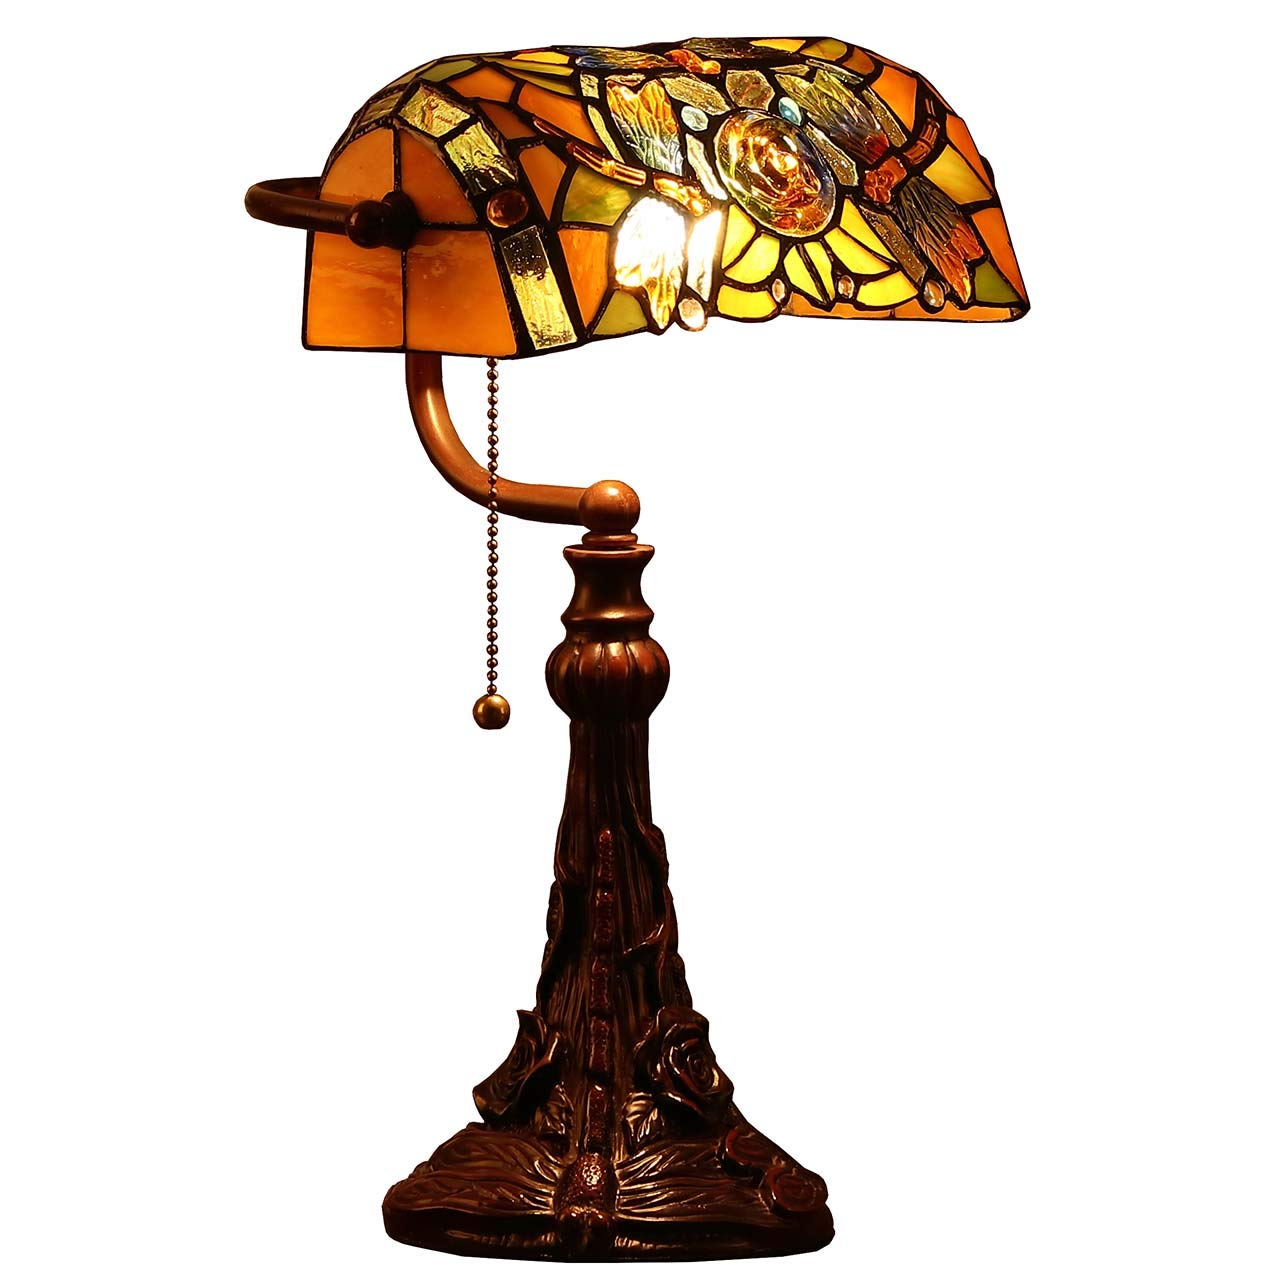 Bieye L10308 Dragonfly Tiffany Style Stained Glass Banker Desk Lamp, Table Lamp with 10-inches Wide Lampshade for Reading Working, 16 inches Tall Brown